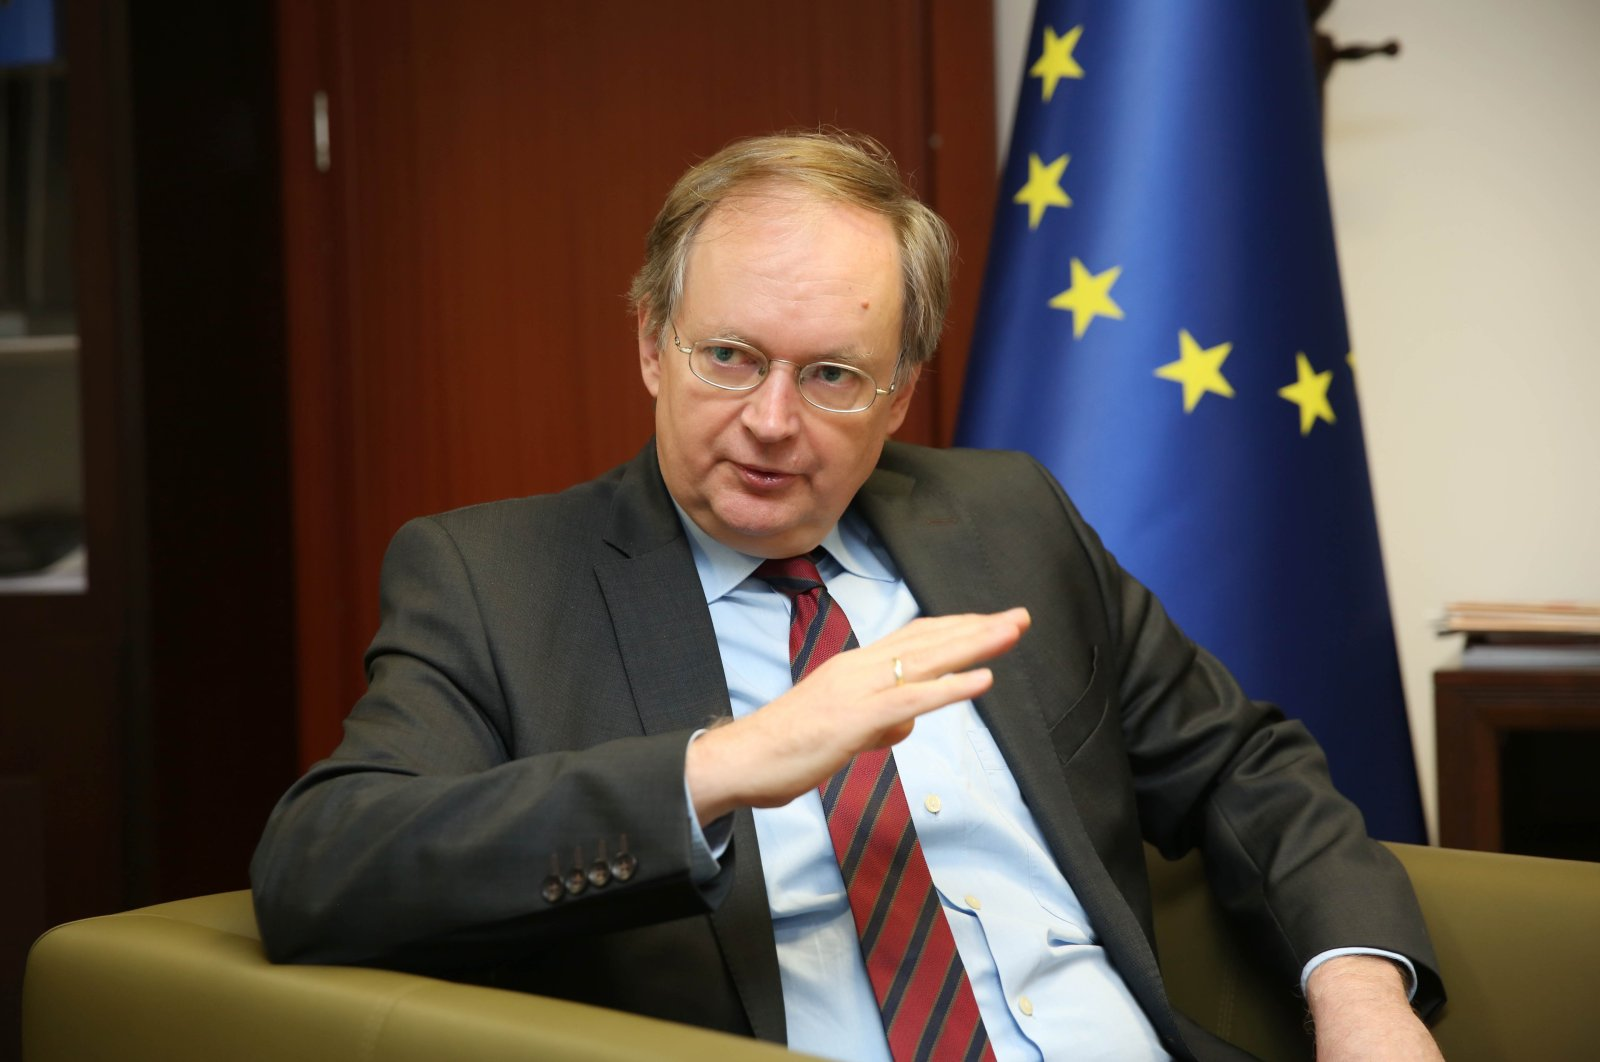 The head of the EU delegation to Turkey, Christian Berger, June 1, 2017. (Daily Sabah File Photo)